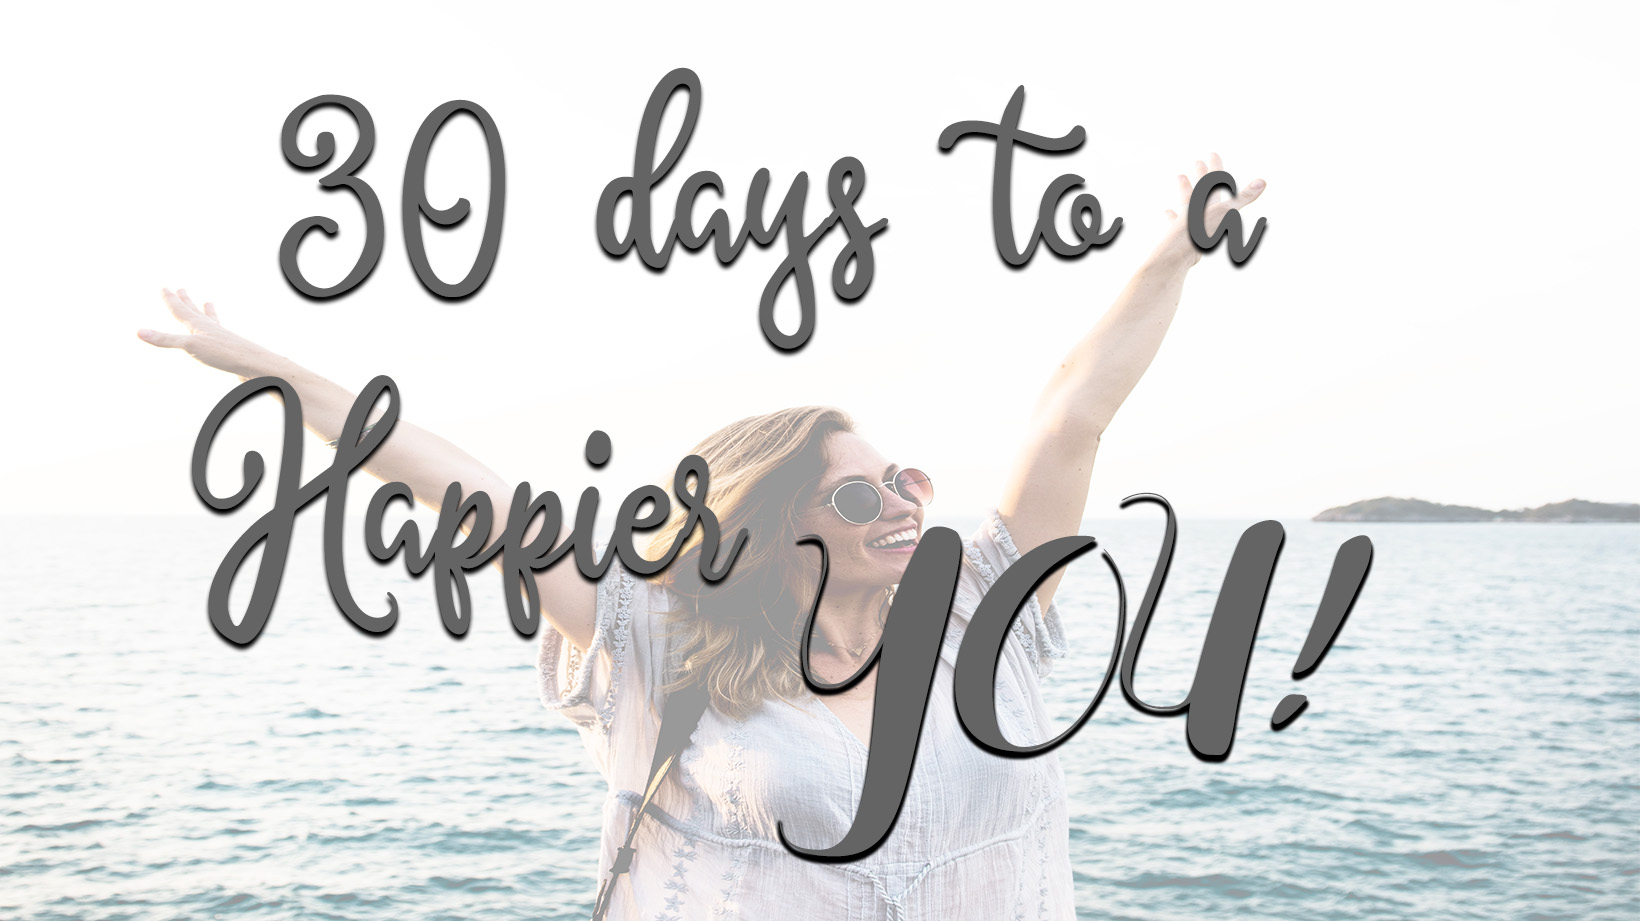 30 days to happier you firewife challenge